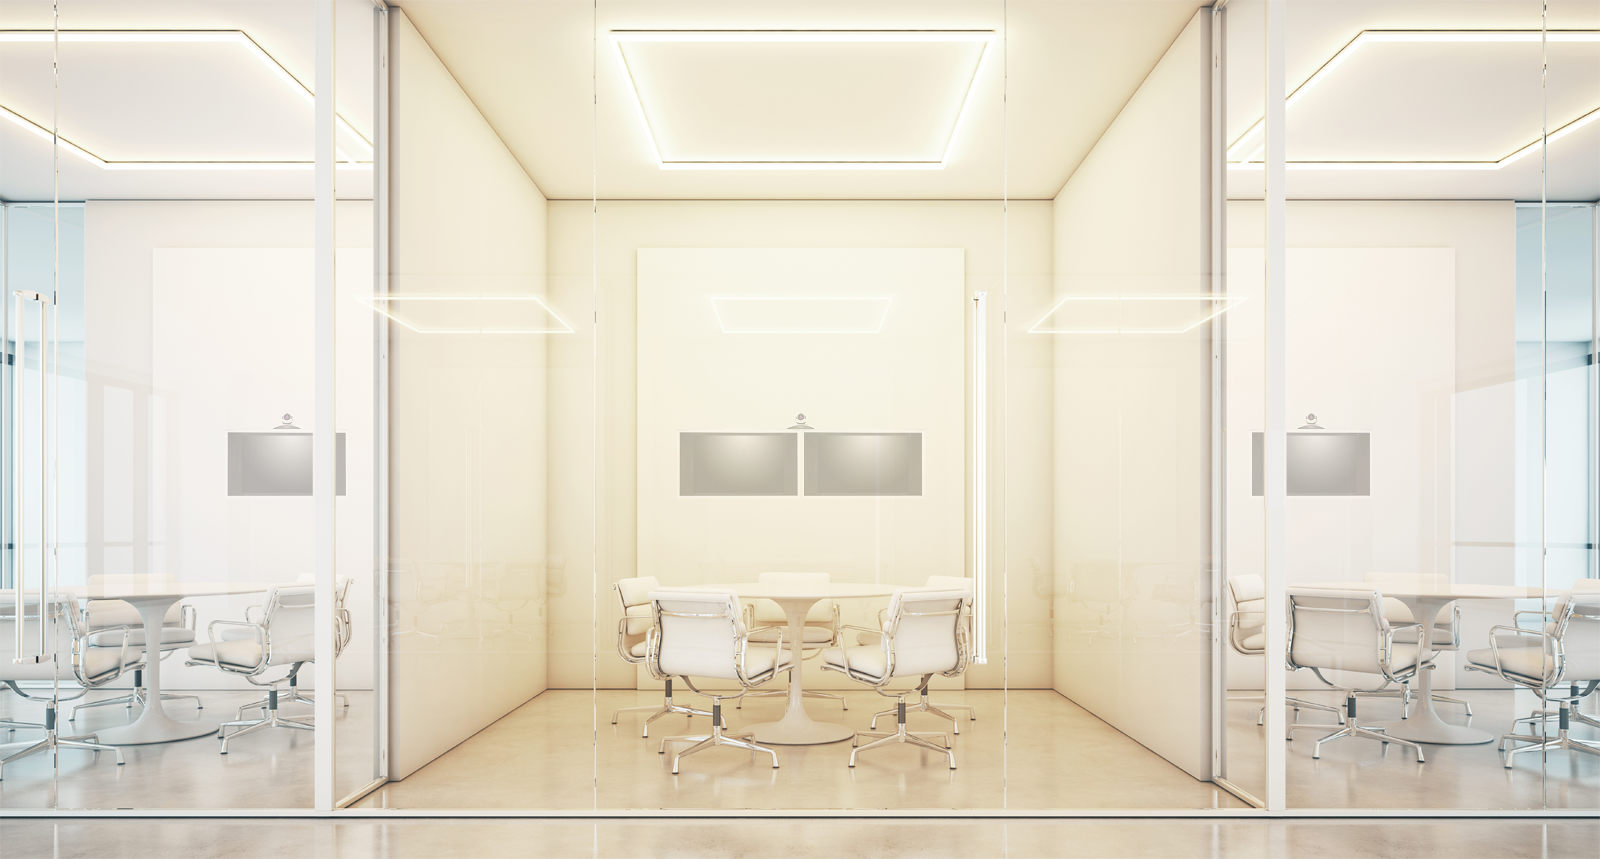 bigstock-Contemporary-Office-Interior-73275004.png